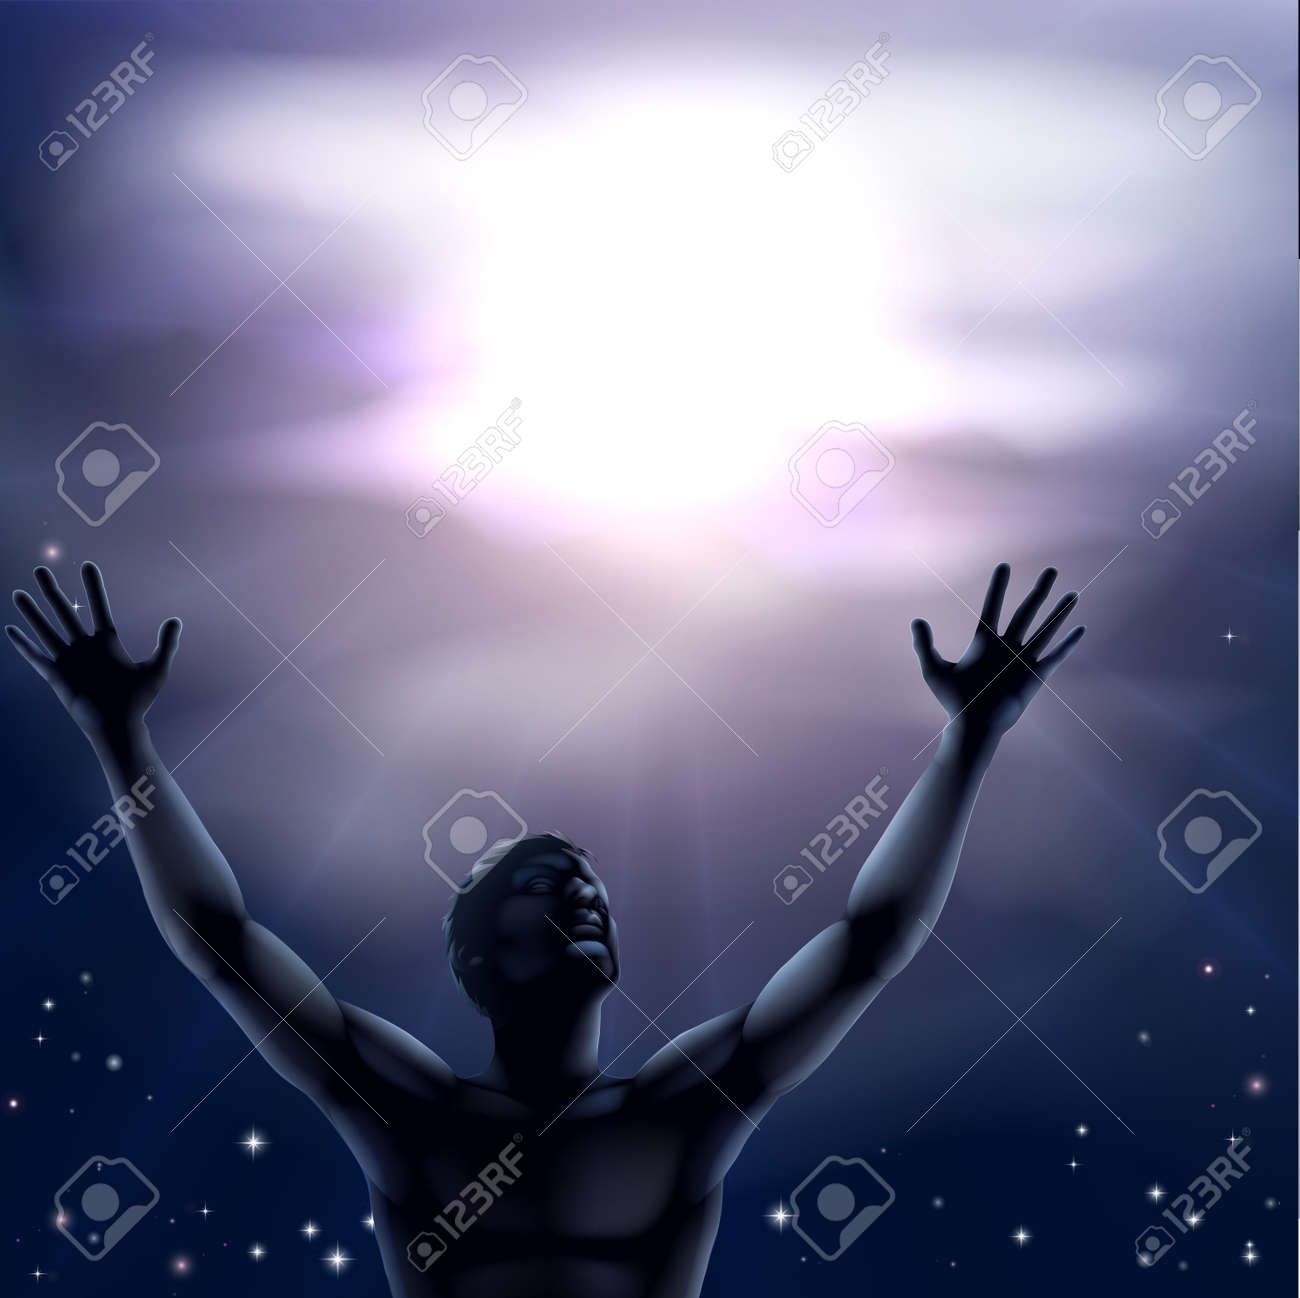 Illustration of a man with a hands and arms raised up to the sky perhaps in praise Stock Vector - 22952240